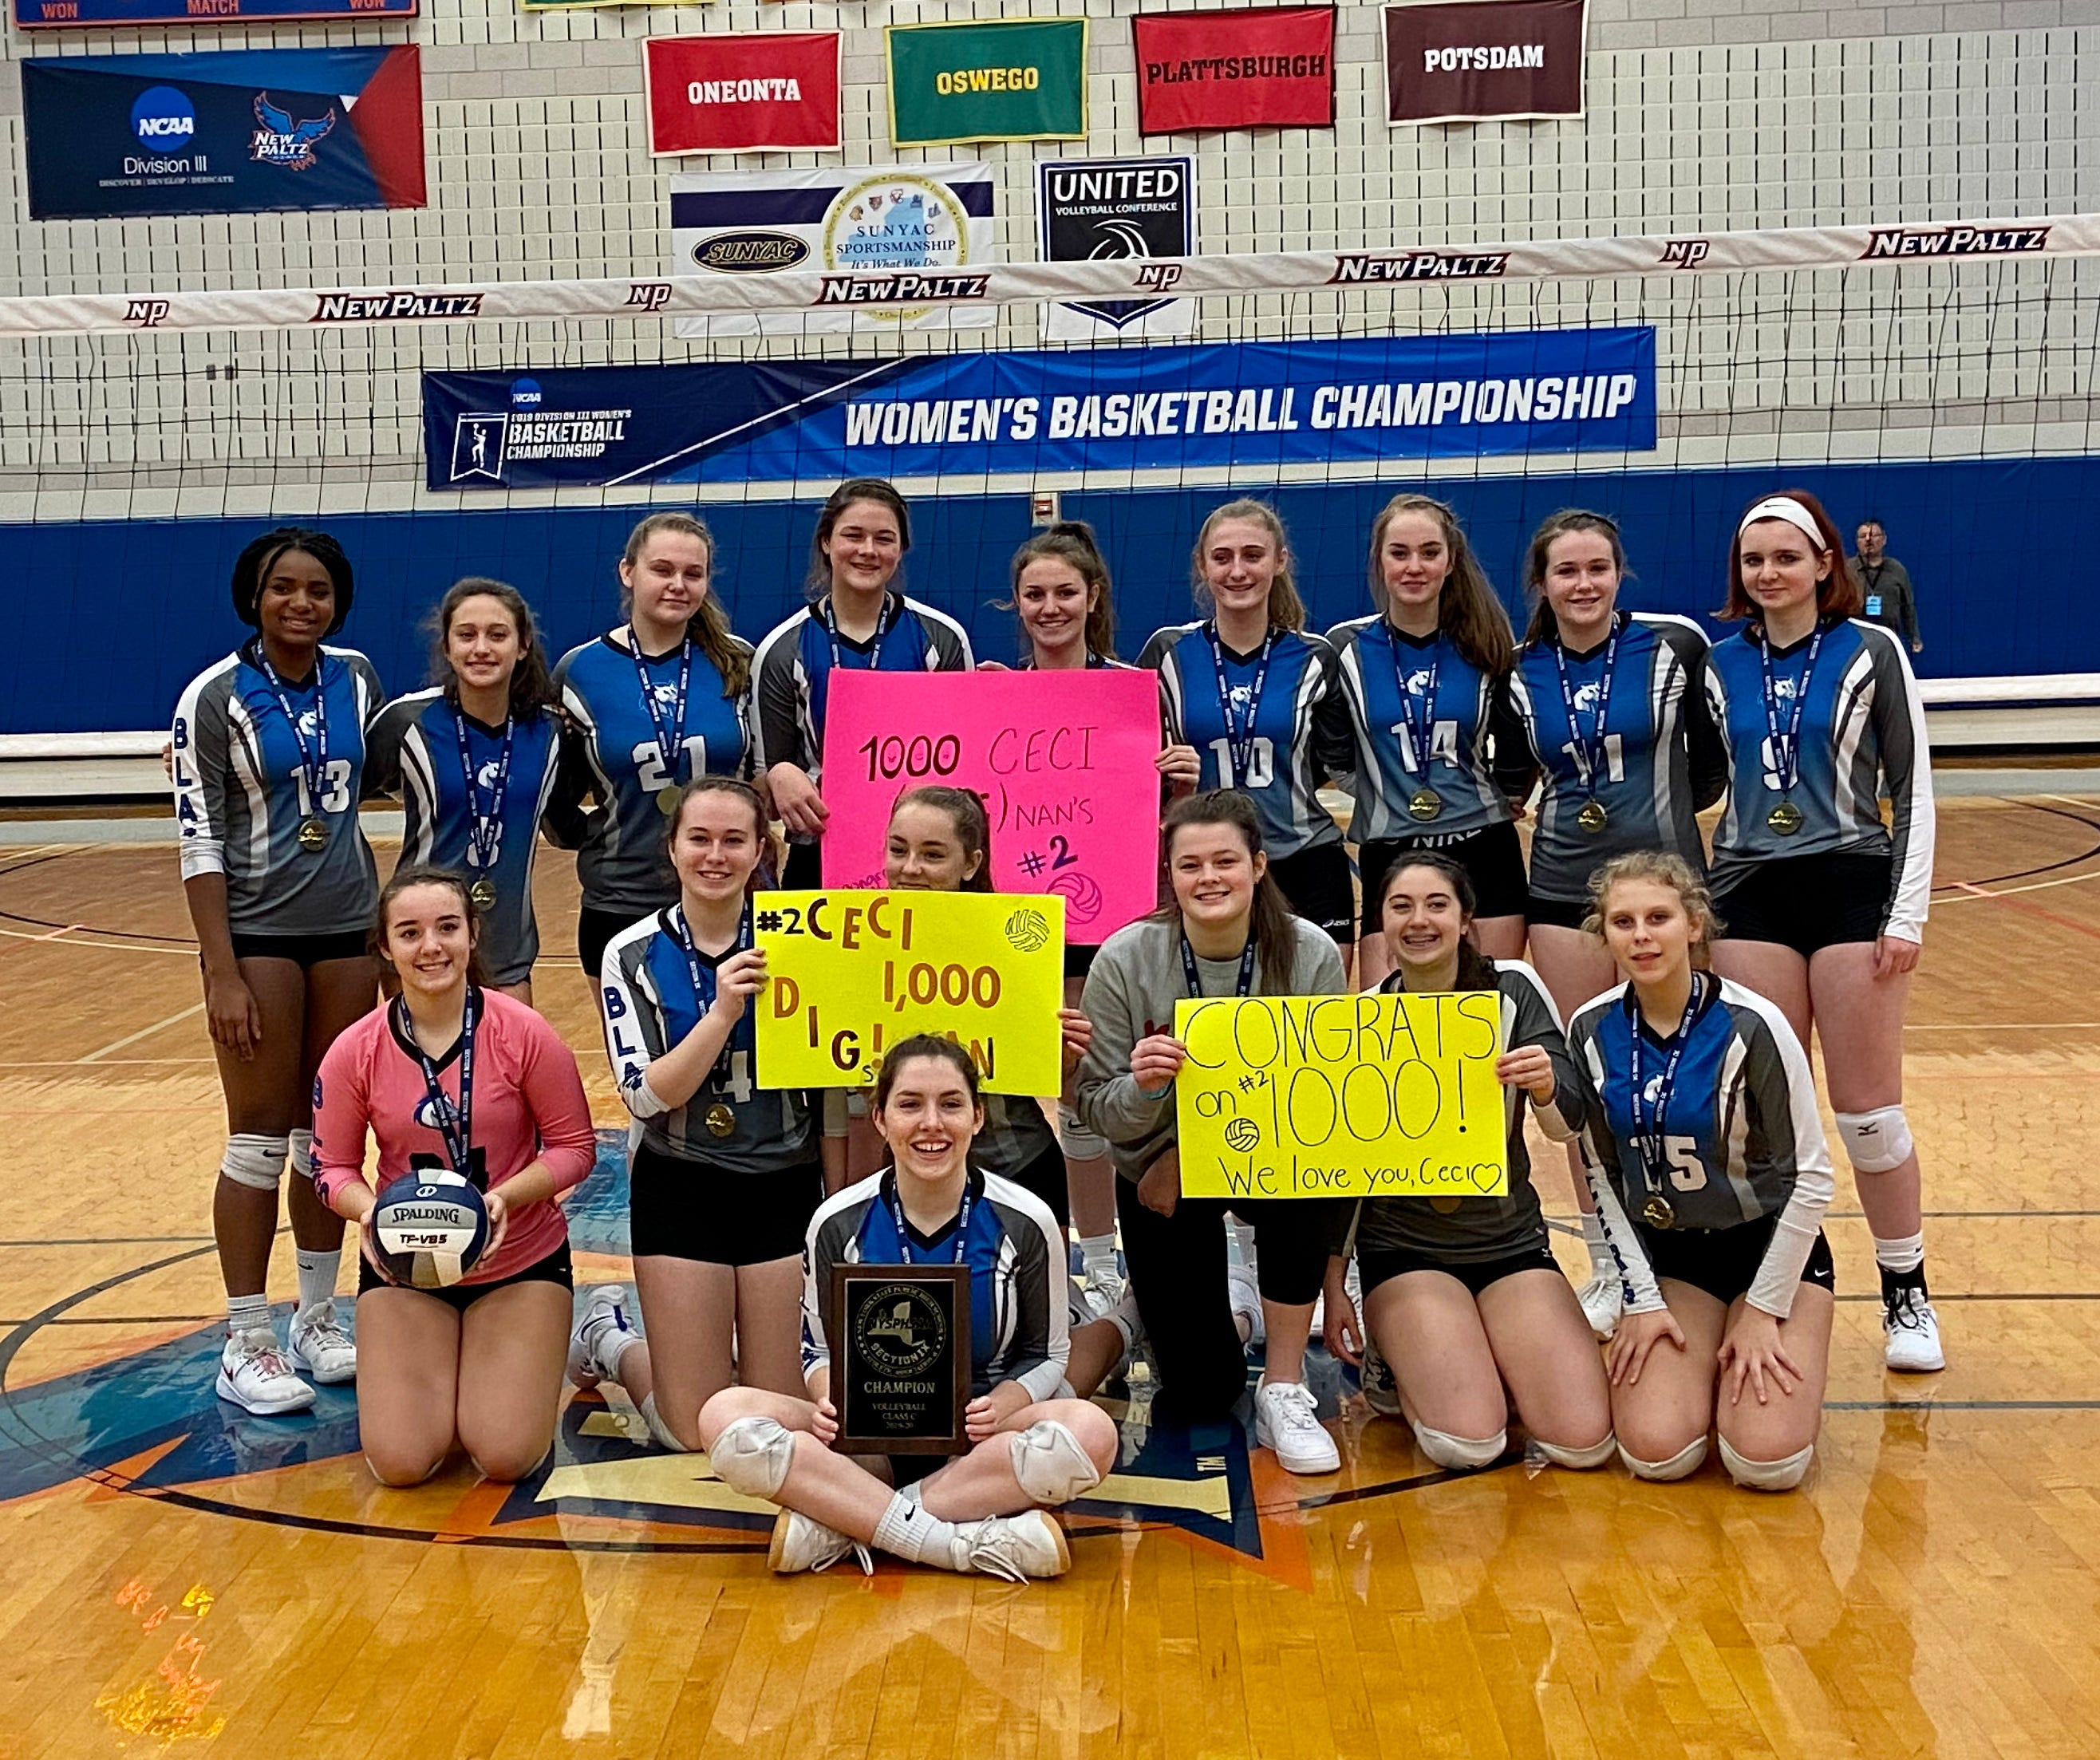 'Underdog' Millbrook volleyball wins Section 9 title, to the surprise of no one - Poughkeepsie Journal